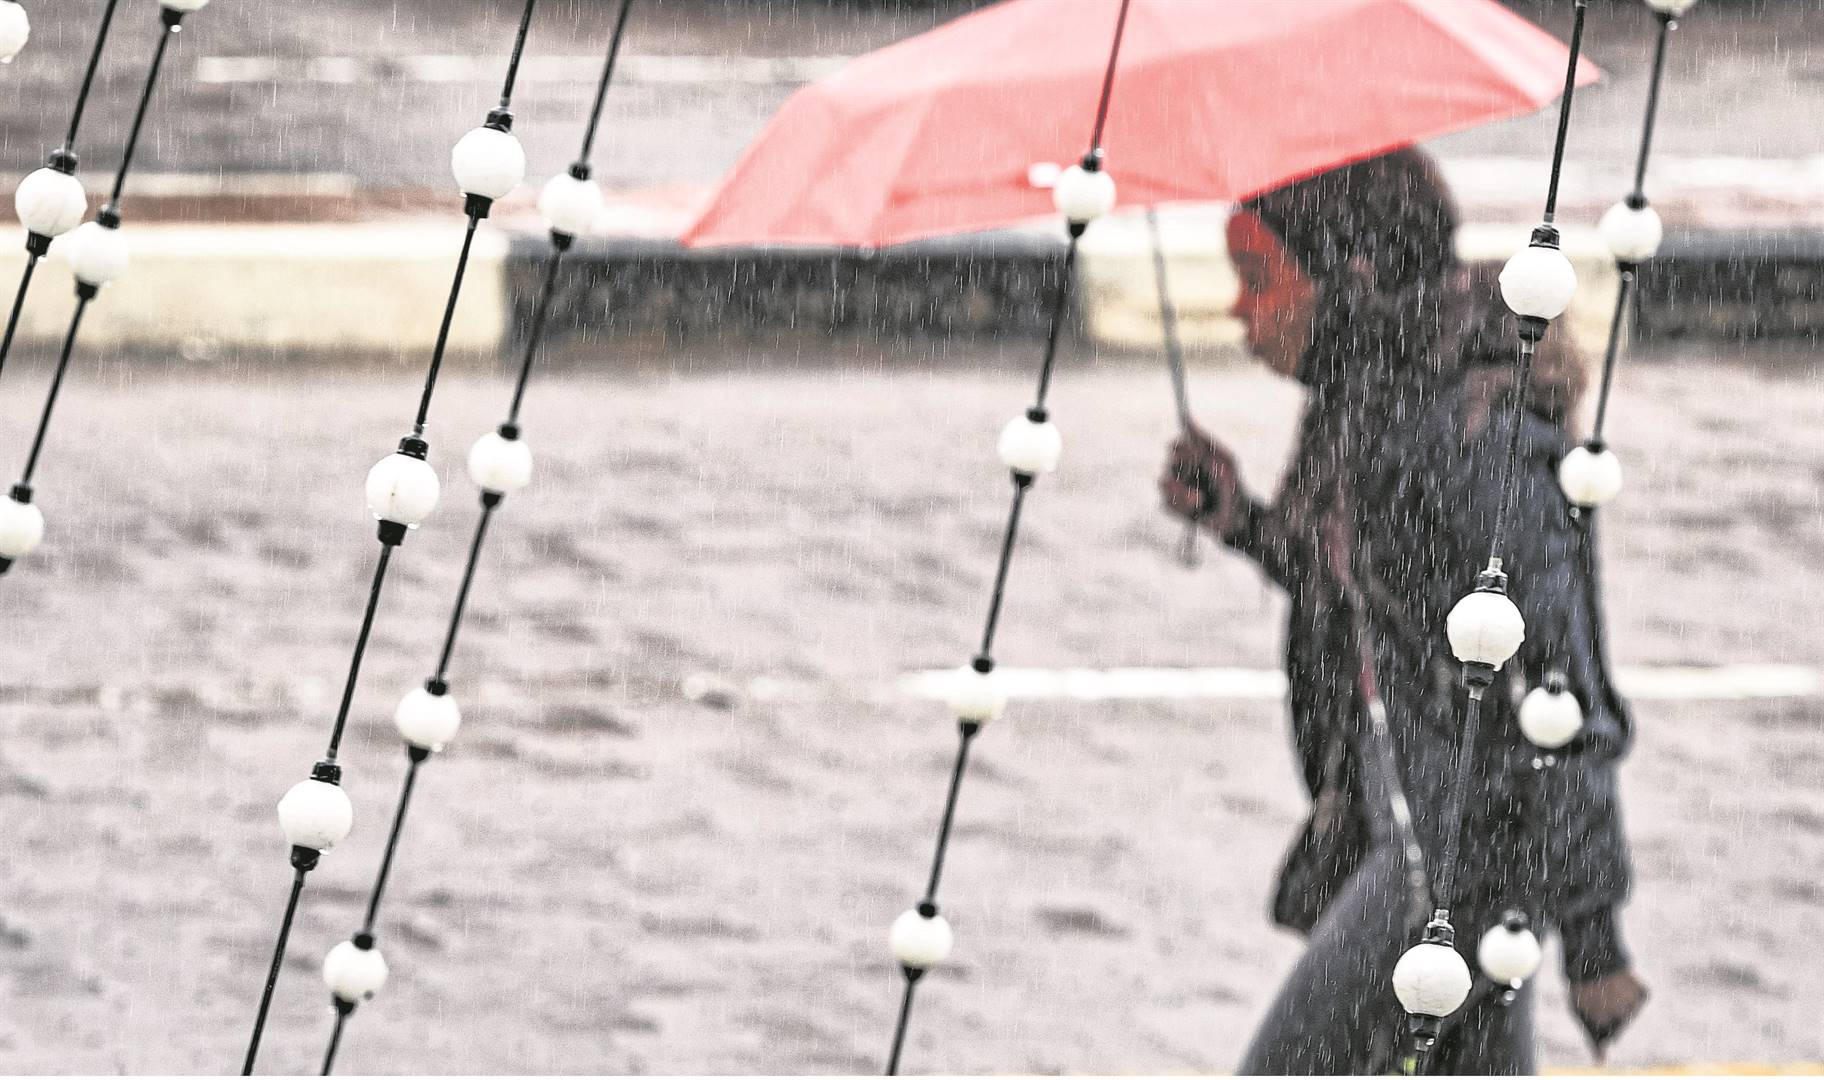 A file image of a woman with umbrella walking in the rain.